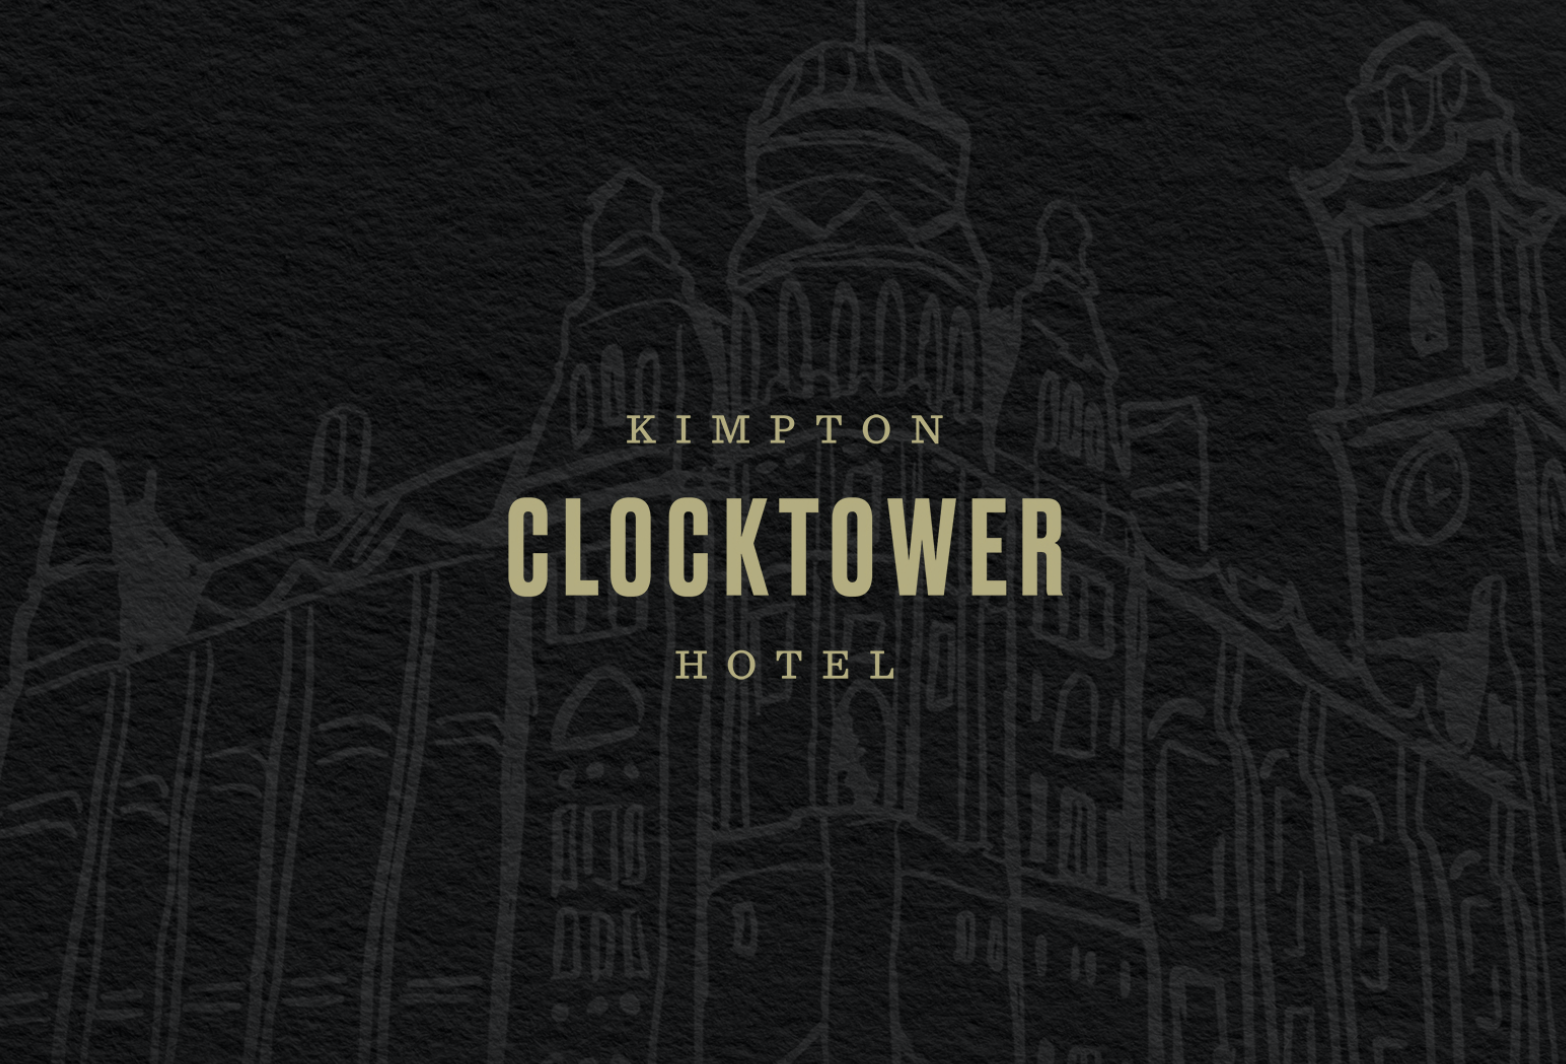 Kimpton Clocktower Hotel Printed Material by The Agency Creative